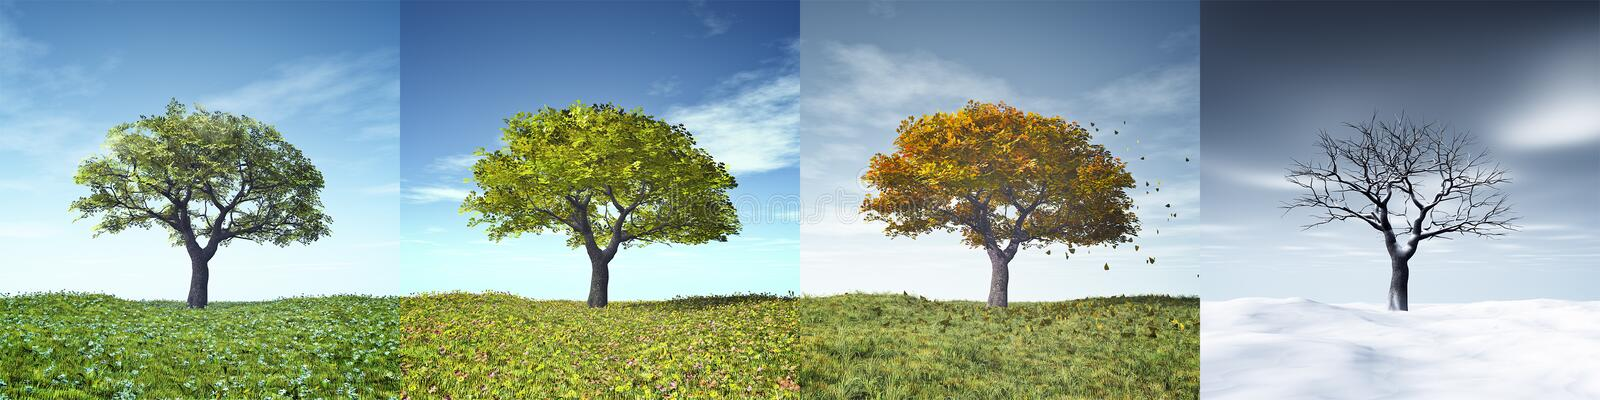 Four seasons tree stock illustration